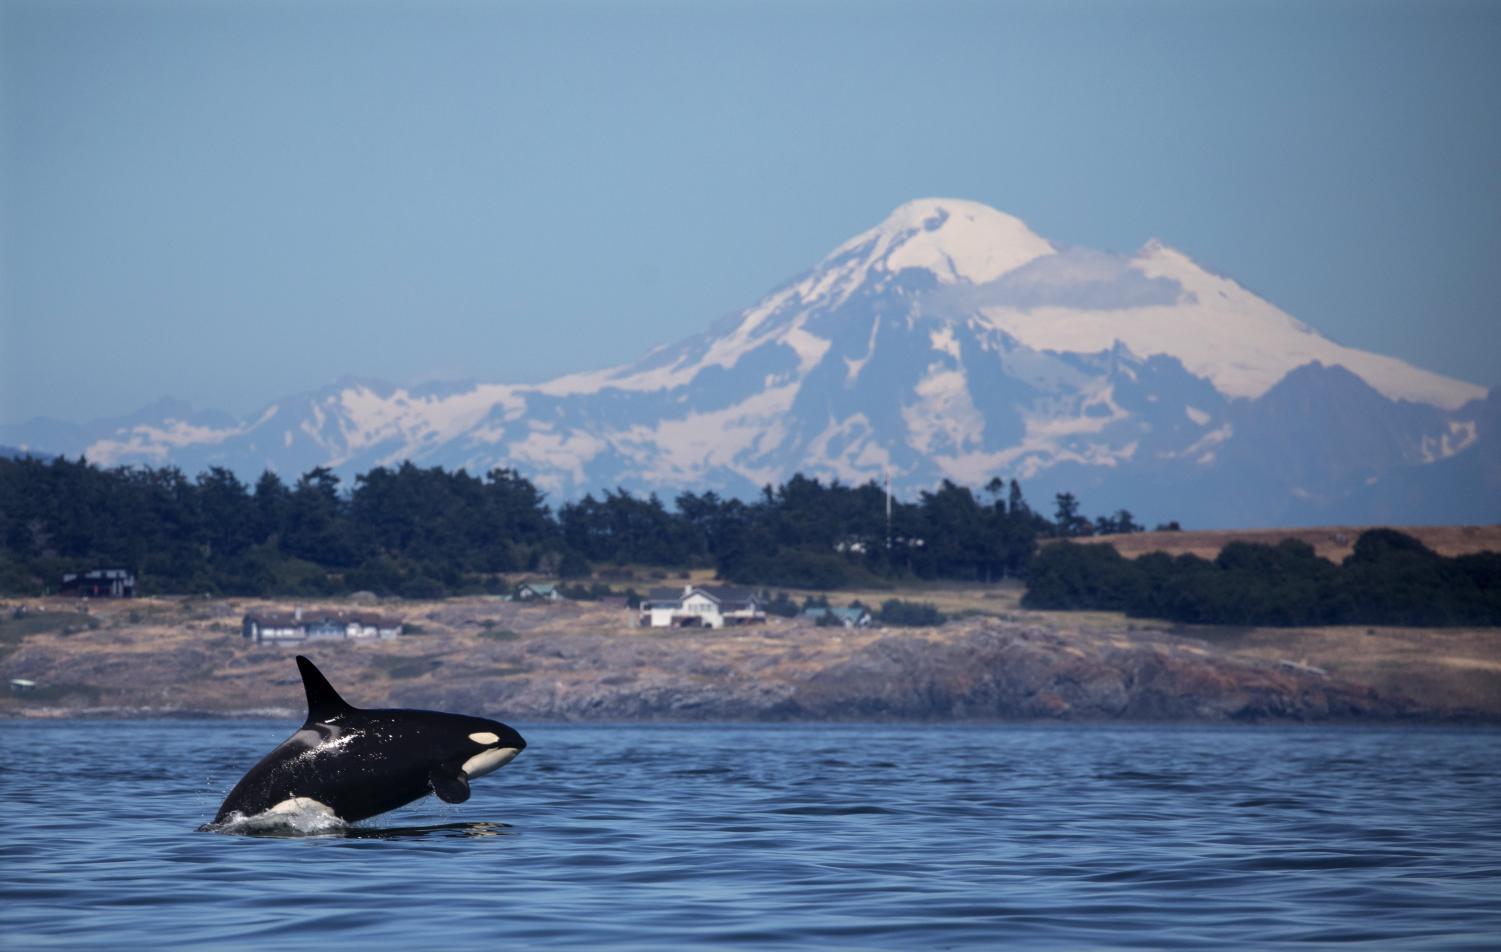 A southern resident killer whale breaches in Haro Strait just off San Juan Island's west side with Mt. Baker in the backround.